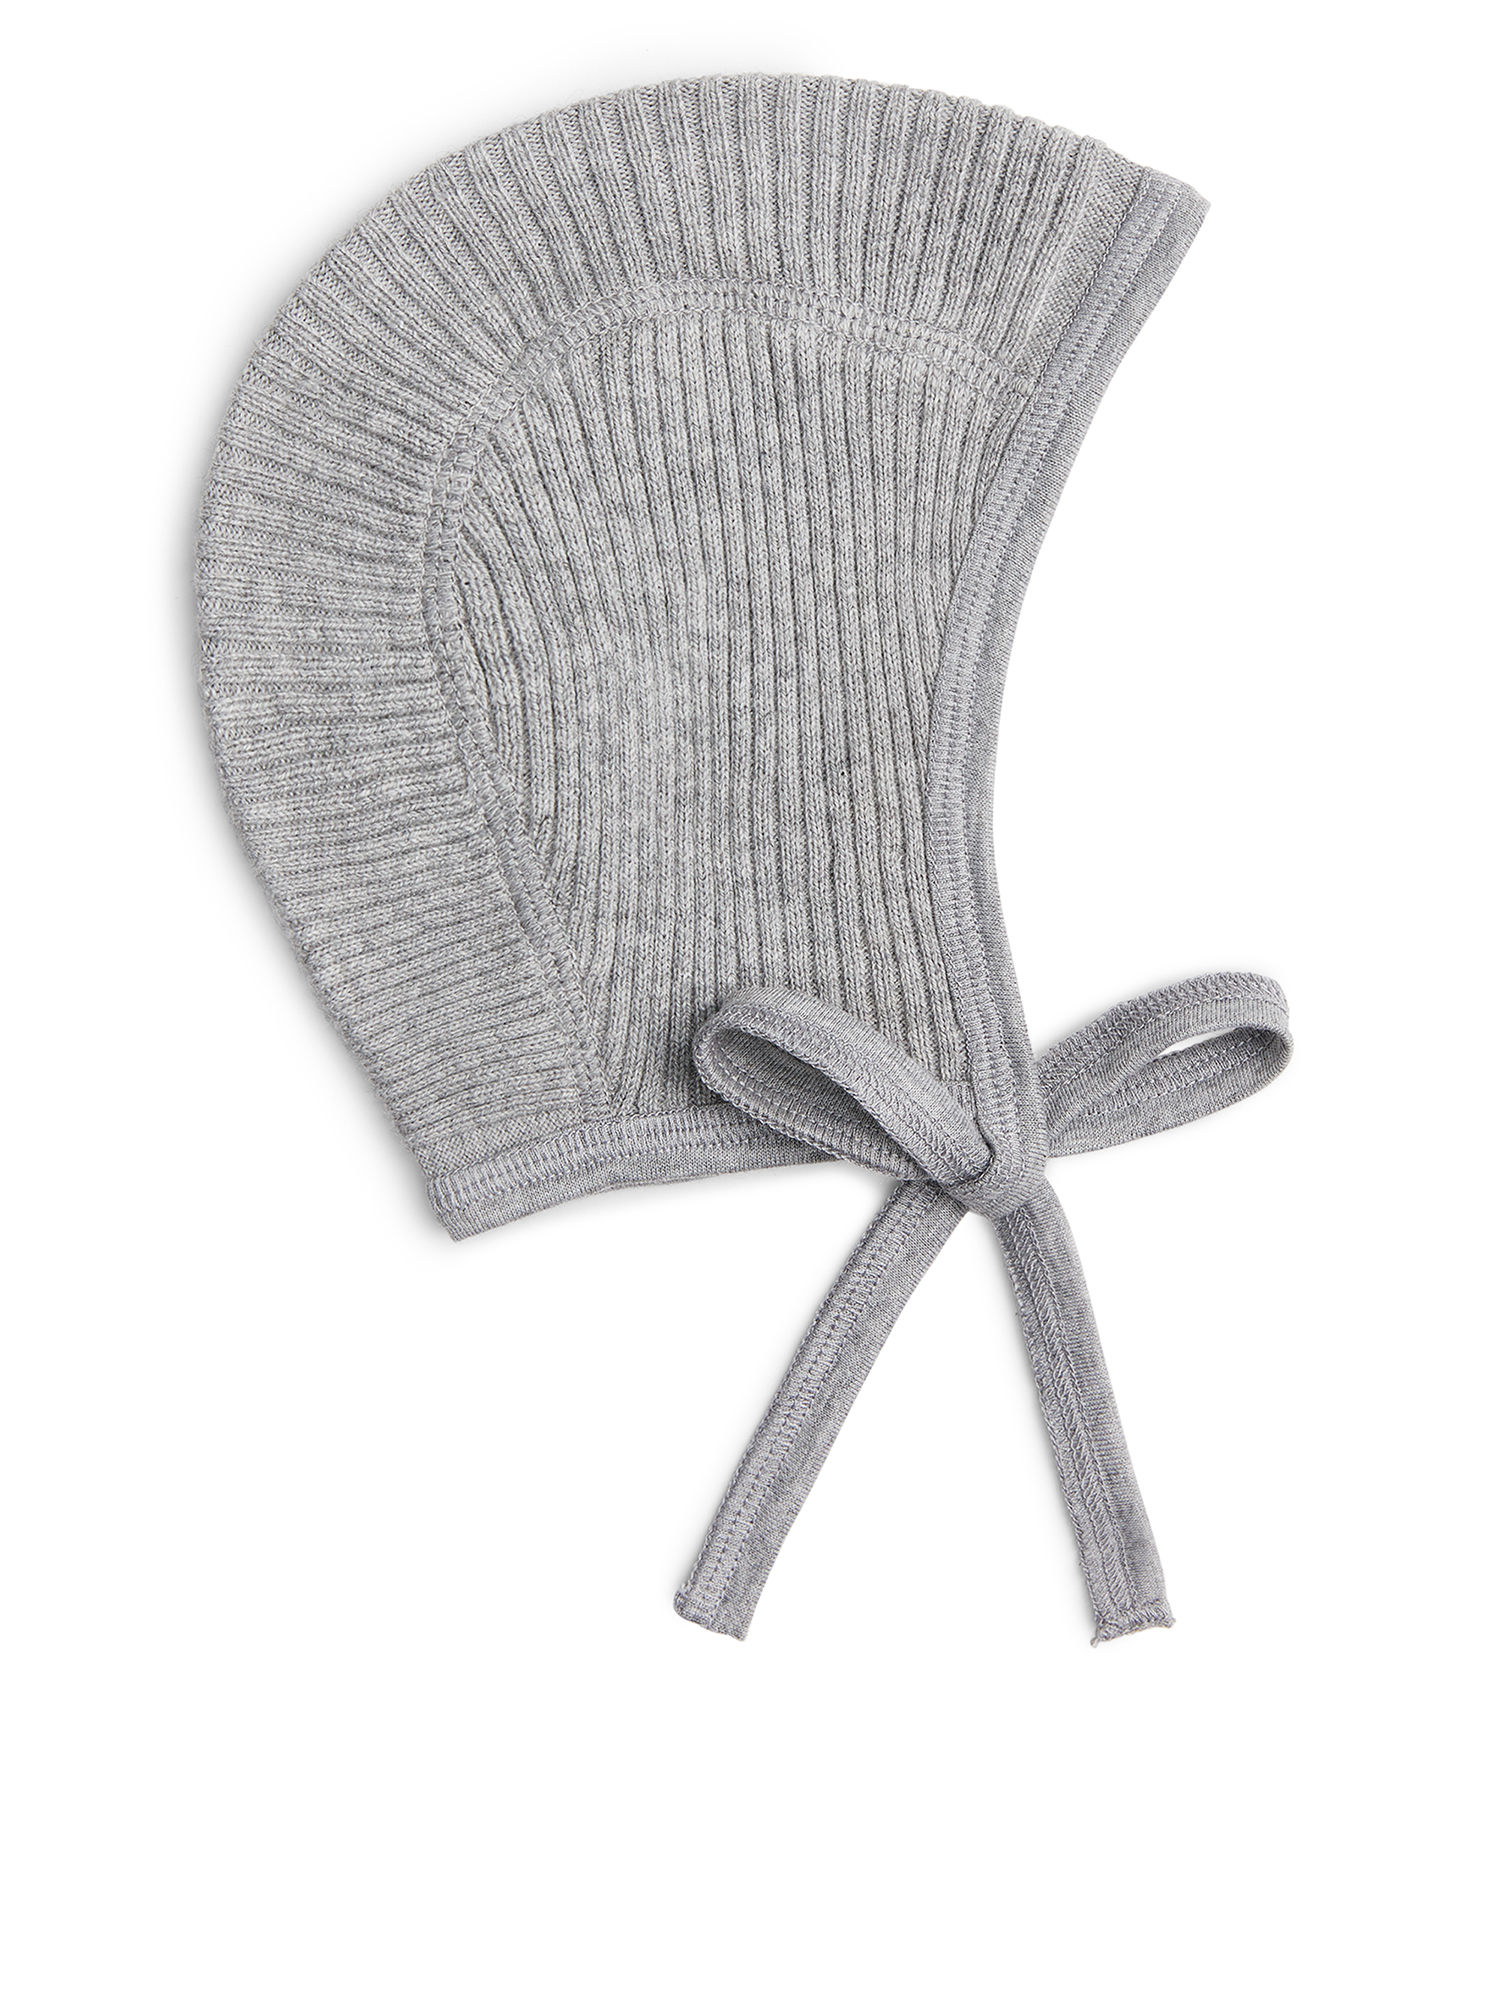 Fabric Swatch image of Arket cotton cashmere helmet cap in grey